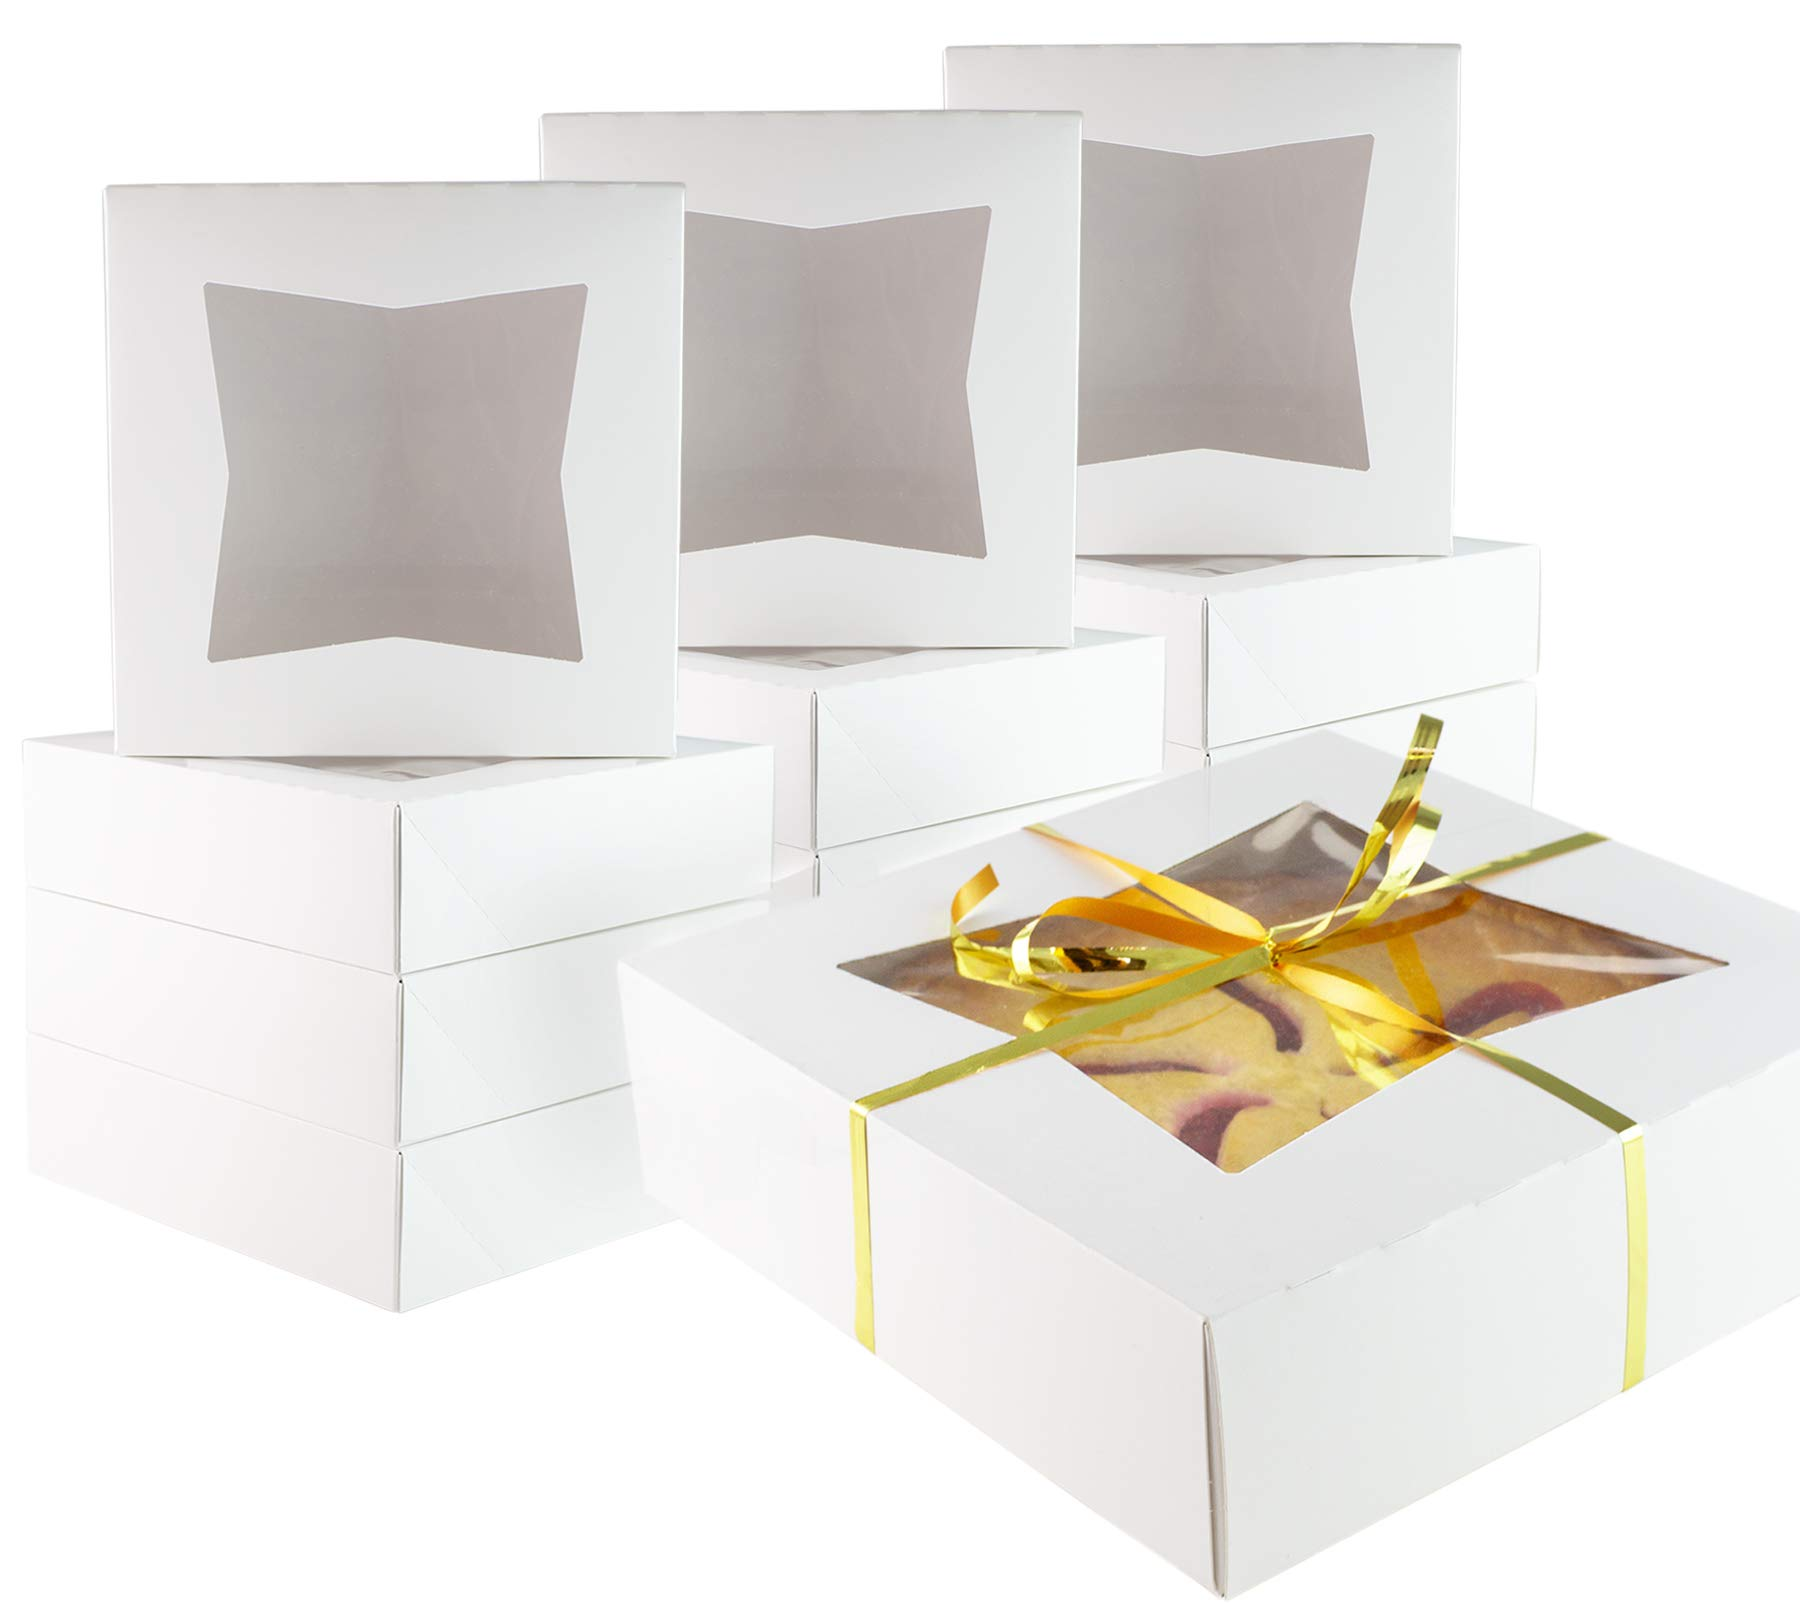 Chefible 10x10x2.5'' Pie Boxes with Window- Perfect for Pies, Pastries, Cookies and More! Set of 200 by Chefible®